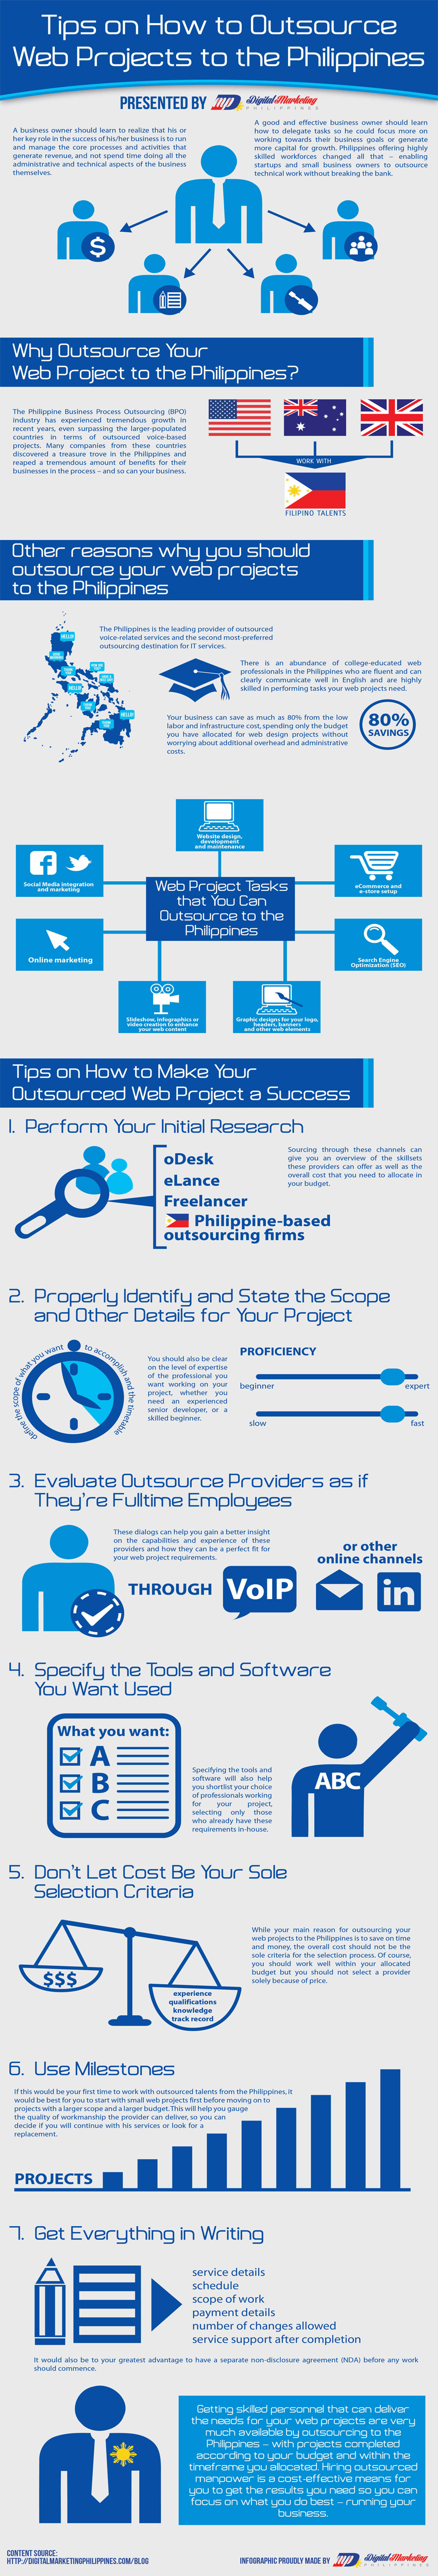 tips on how to outsource web projects to the philippines